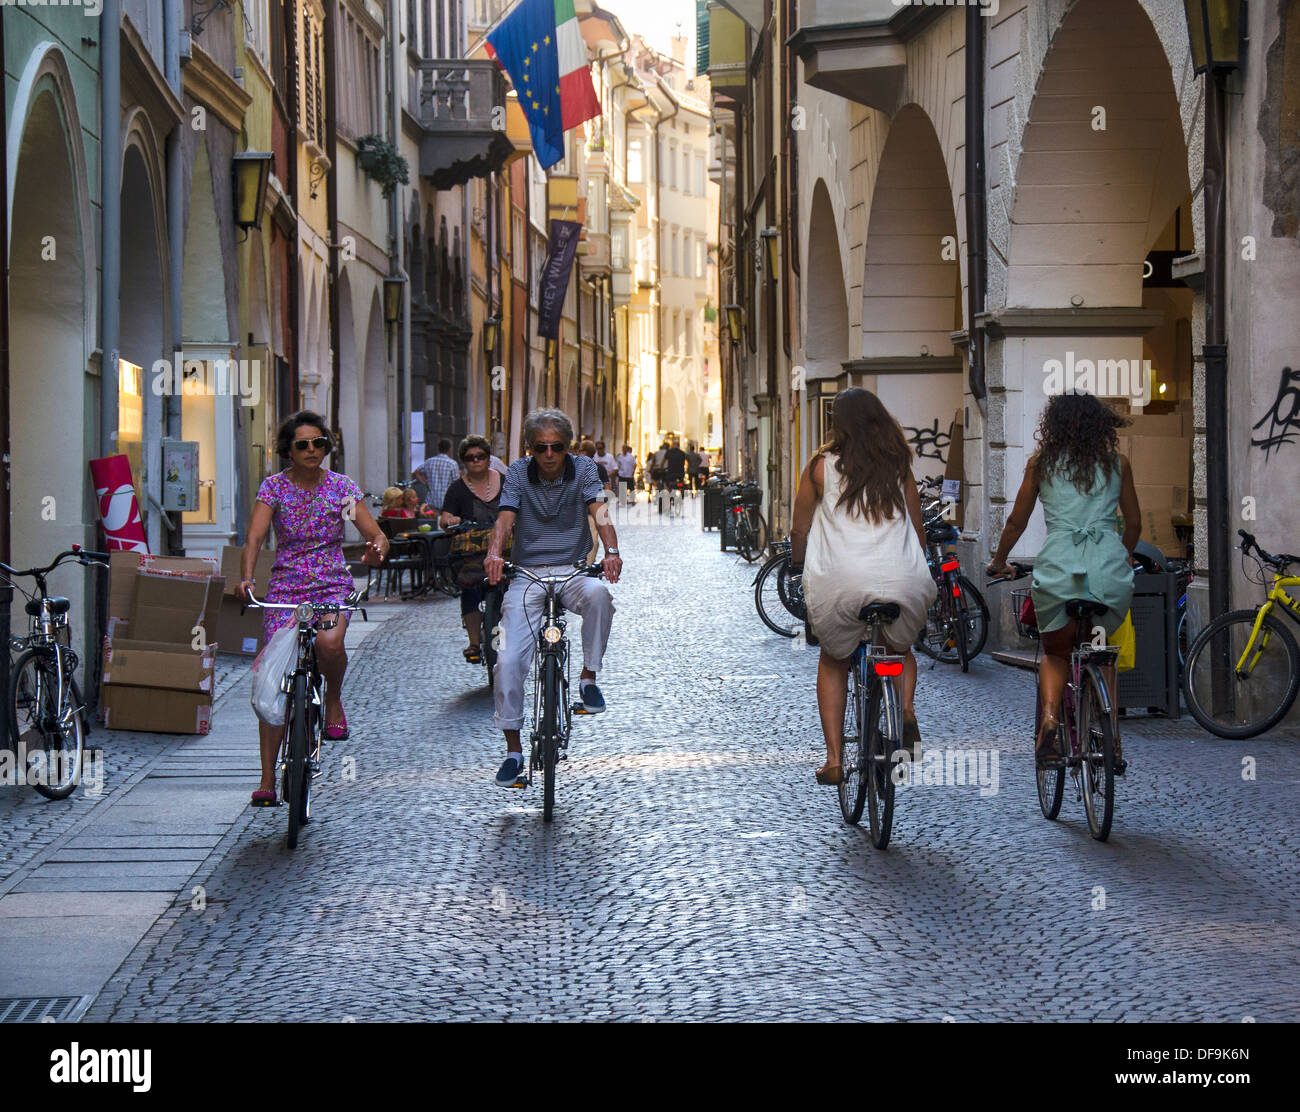 Bicyclists in historic city centre; old town; Bolzano; South Tyrol; Italy; Europe - Stock Image